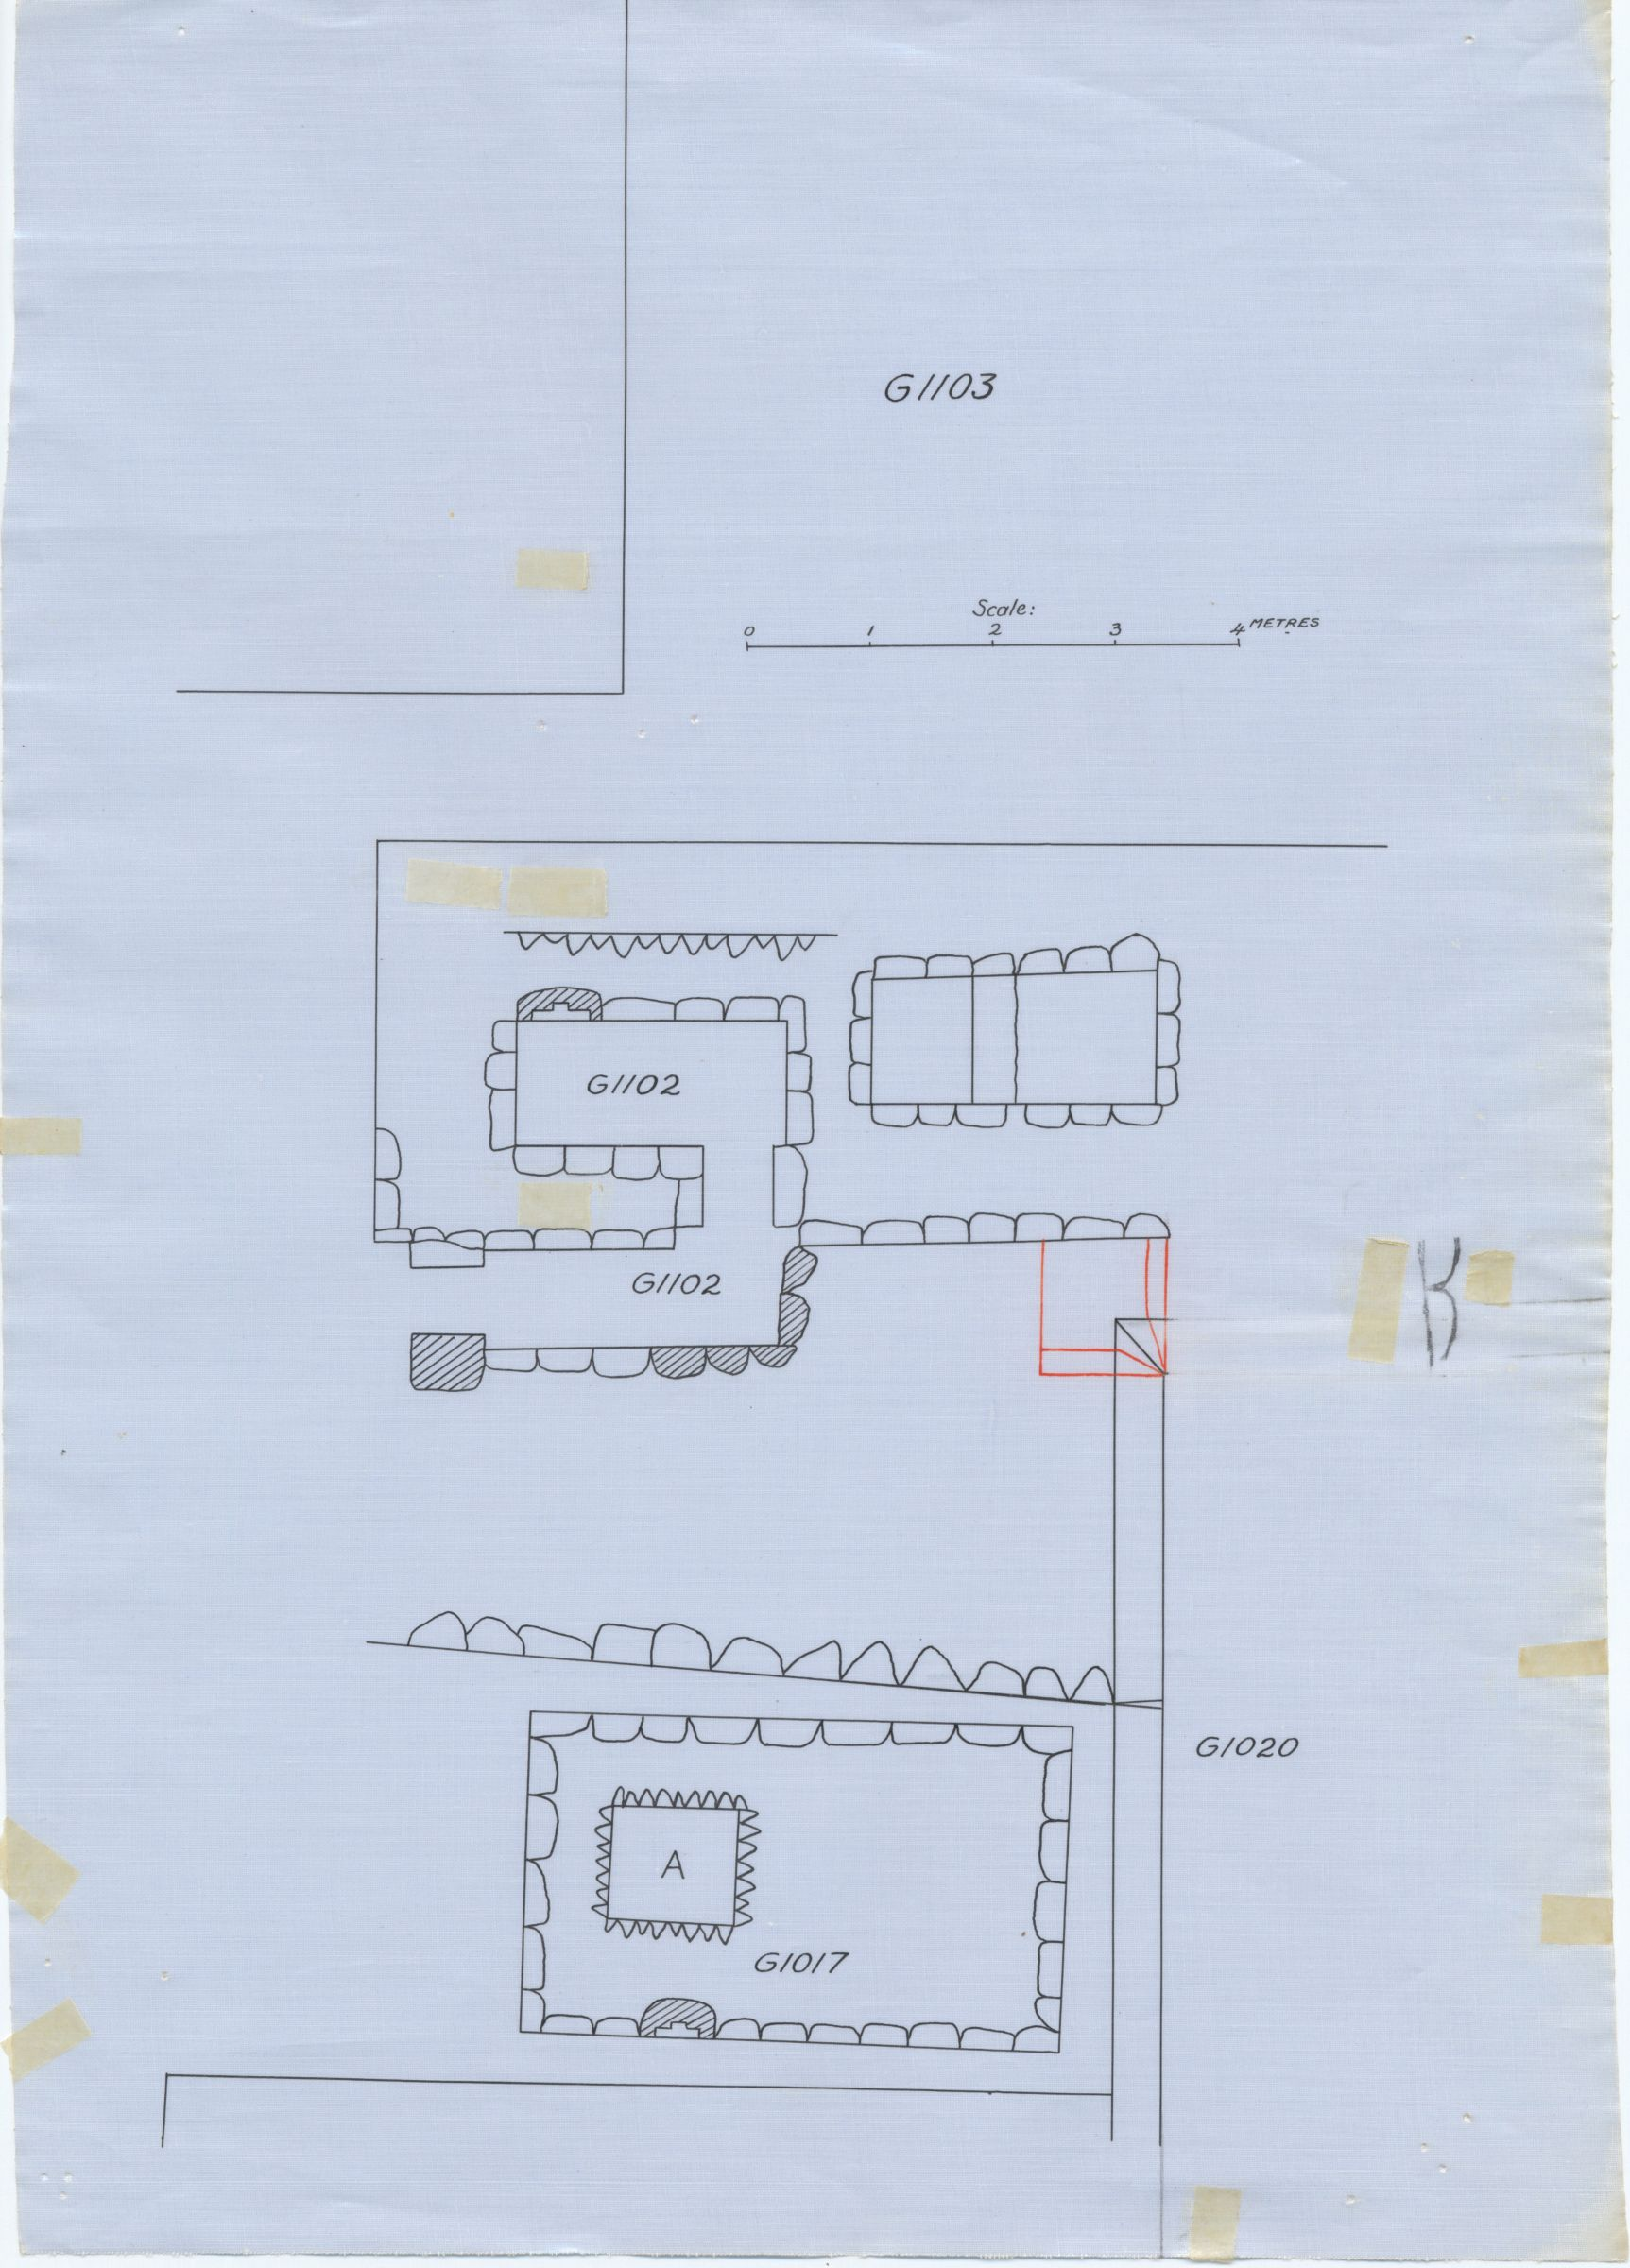 Maps and plans: Plan of G 1017 and G 1102, with position of G 1020 and G 1103